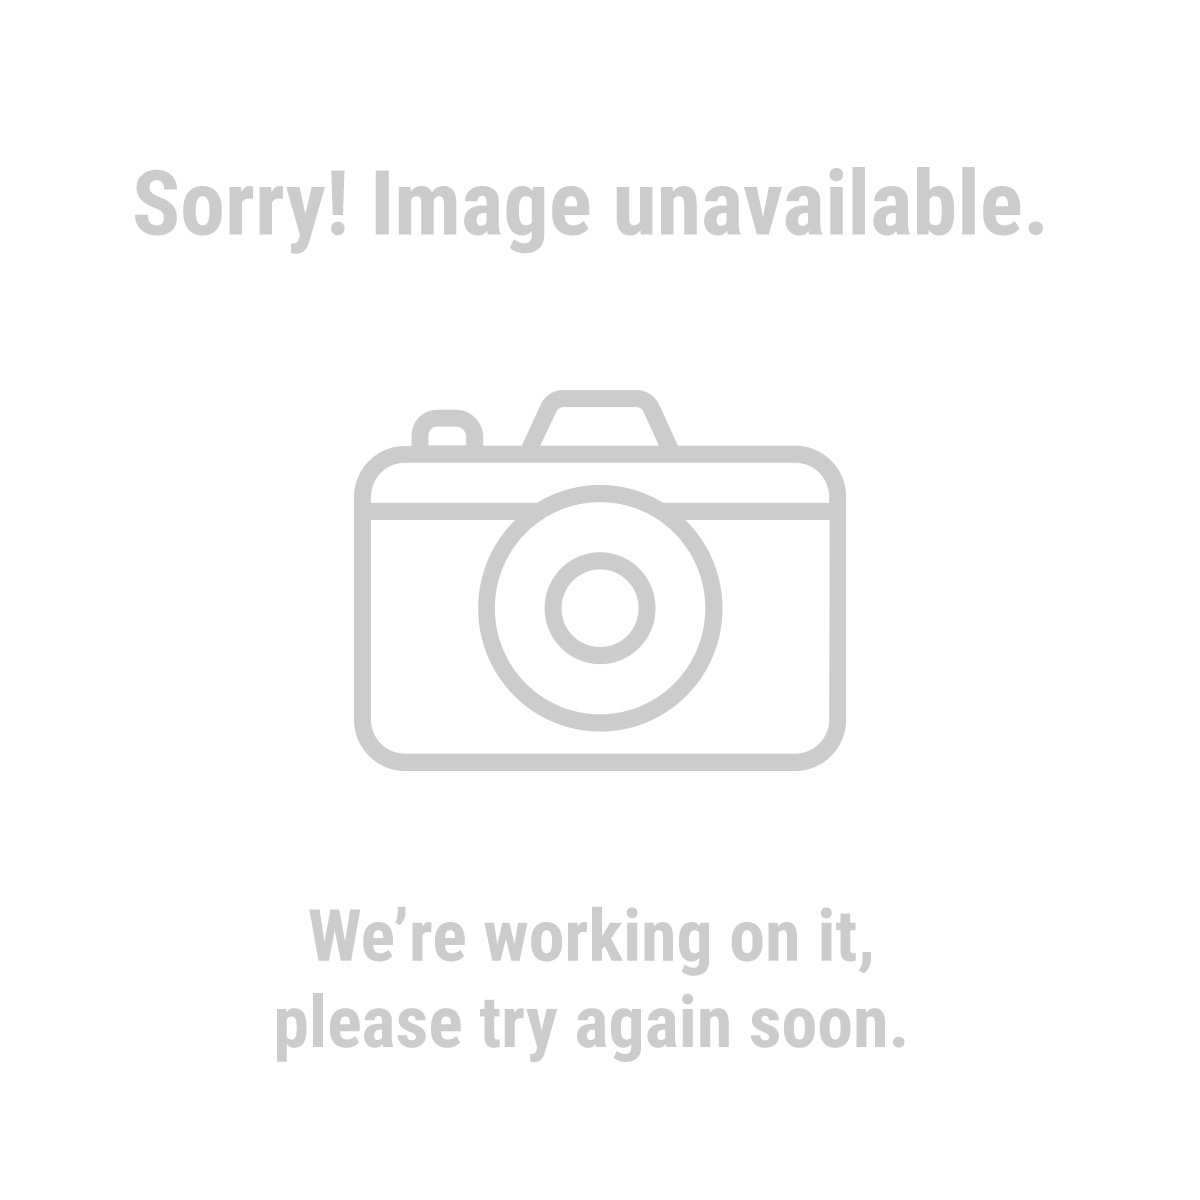 Chicago Electric Power Tools 98862 Replacement Wheels for the 120 Volt Circular Saw Blade Sharpener